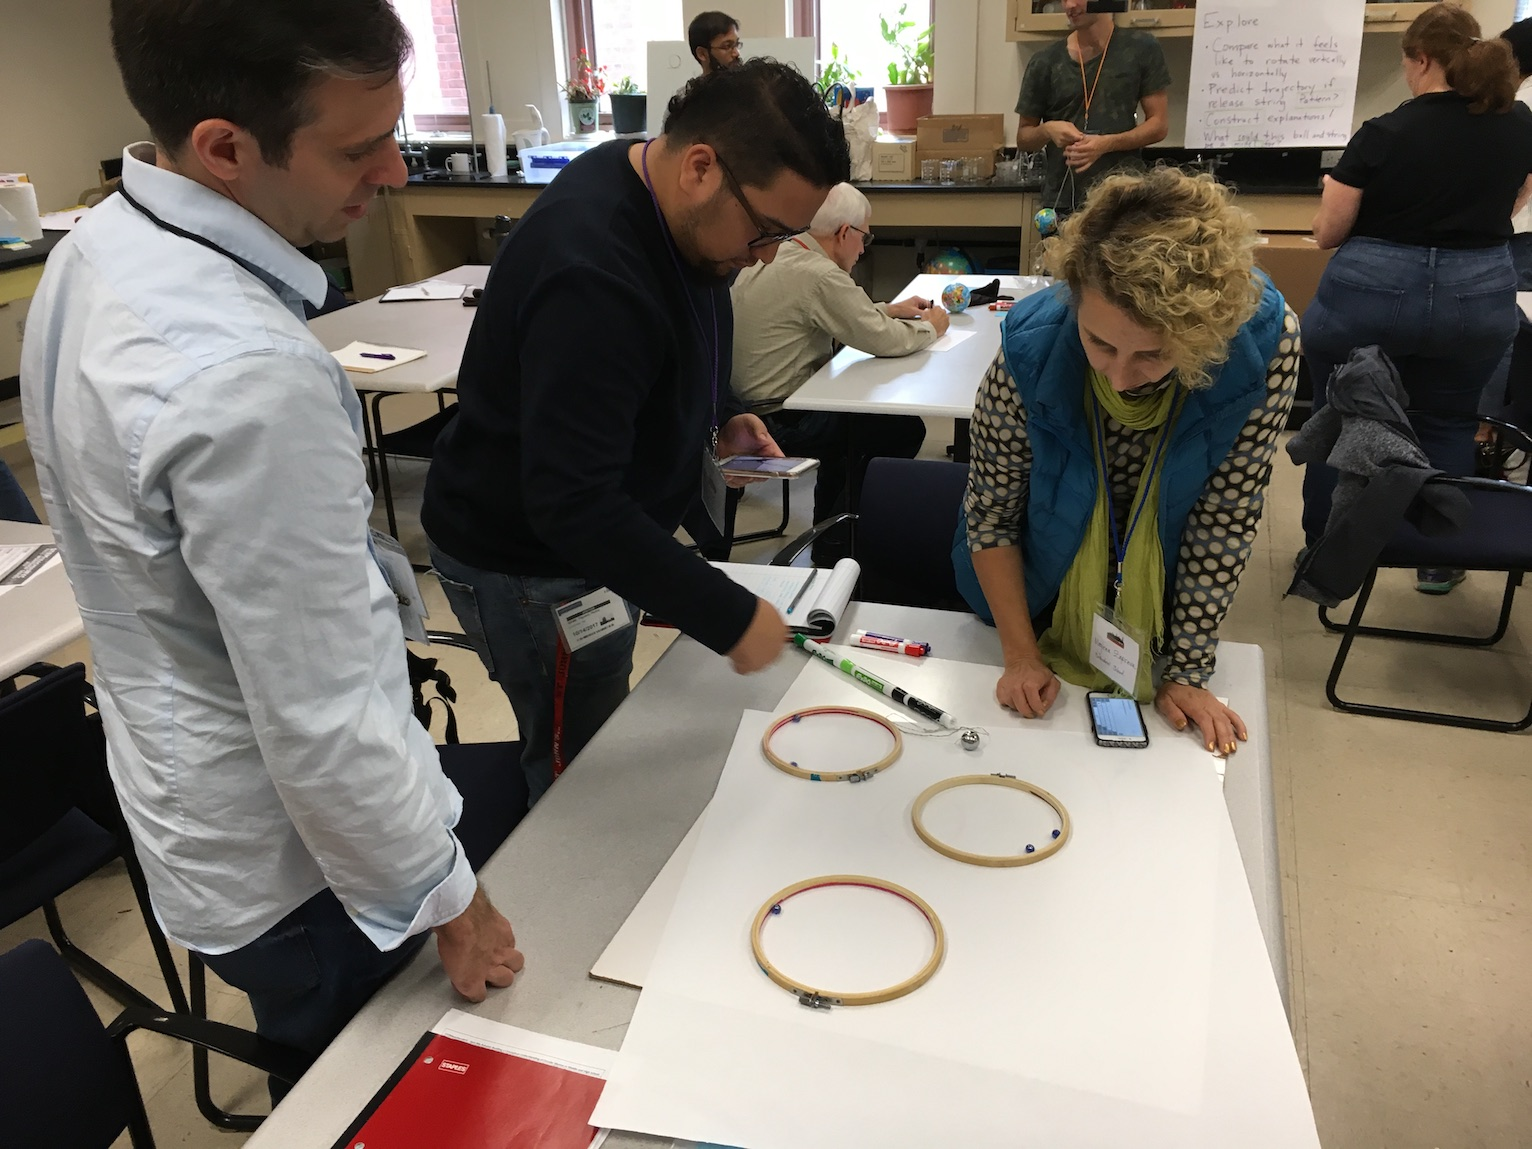 Designing for Discourse and Sensemaking in Physics Class